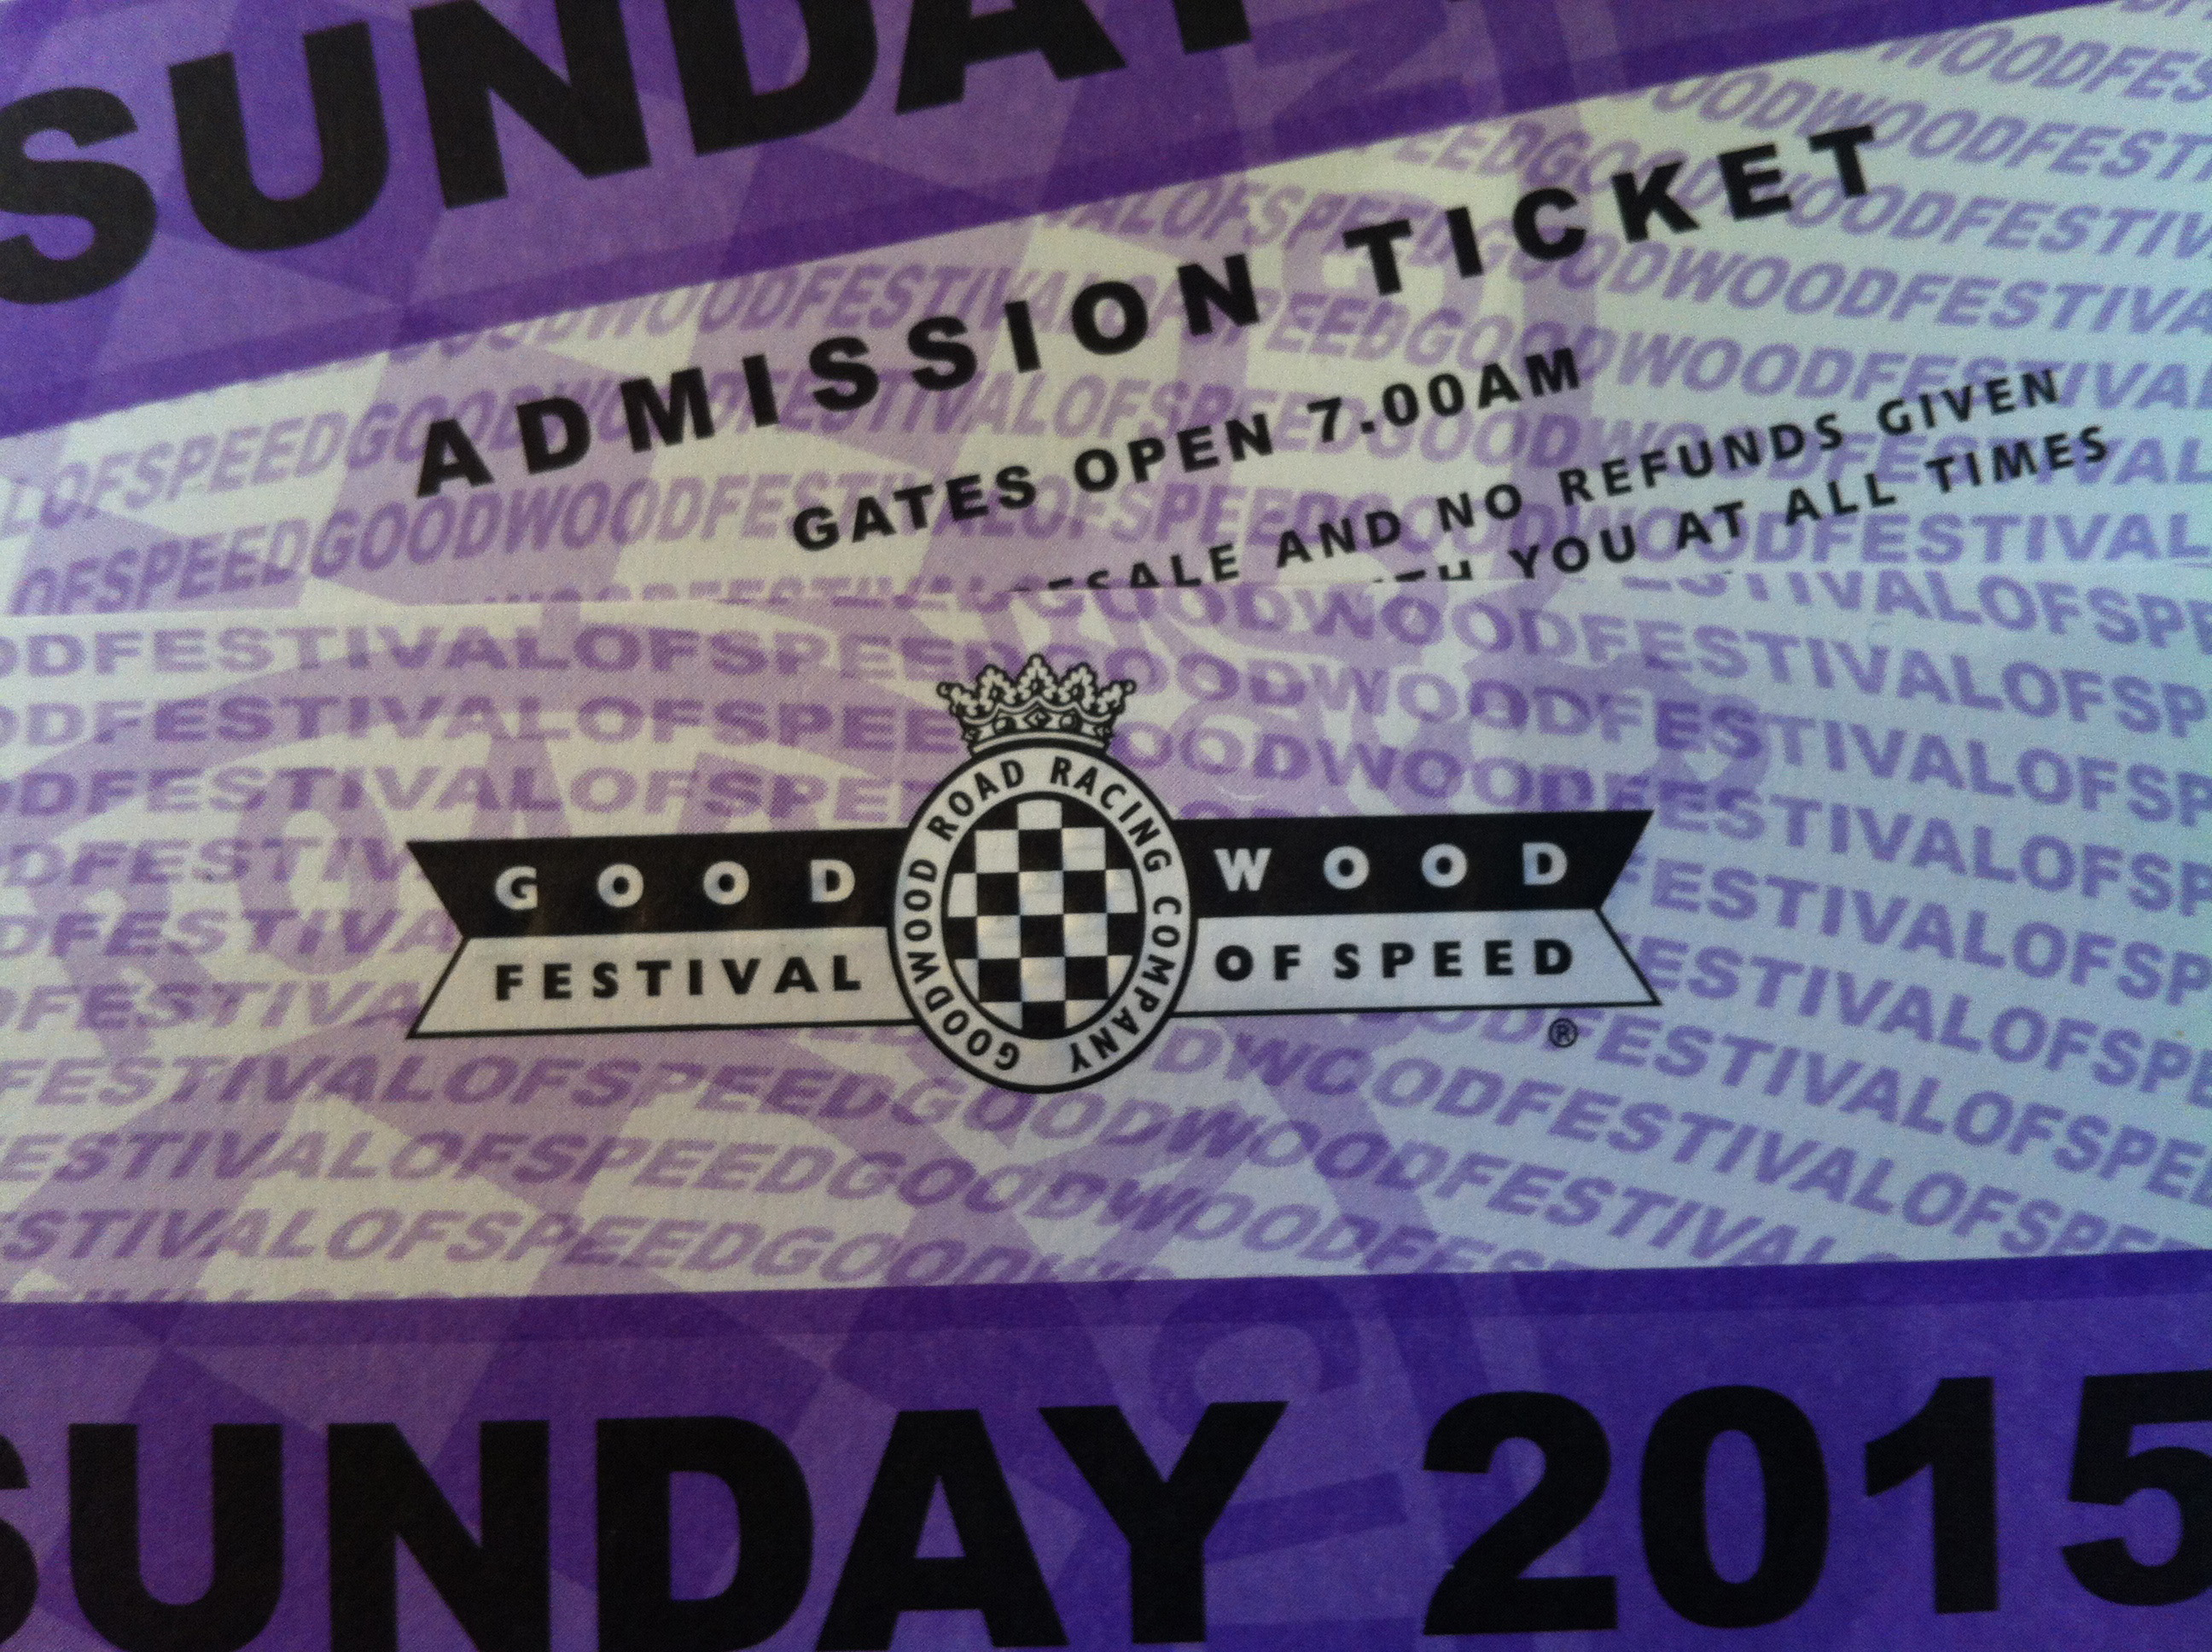 Christmas Car Gift: Tickets To The Goodwood Festival Of Speed